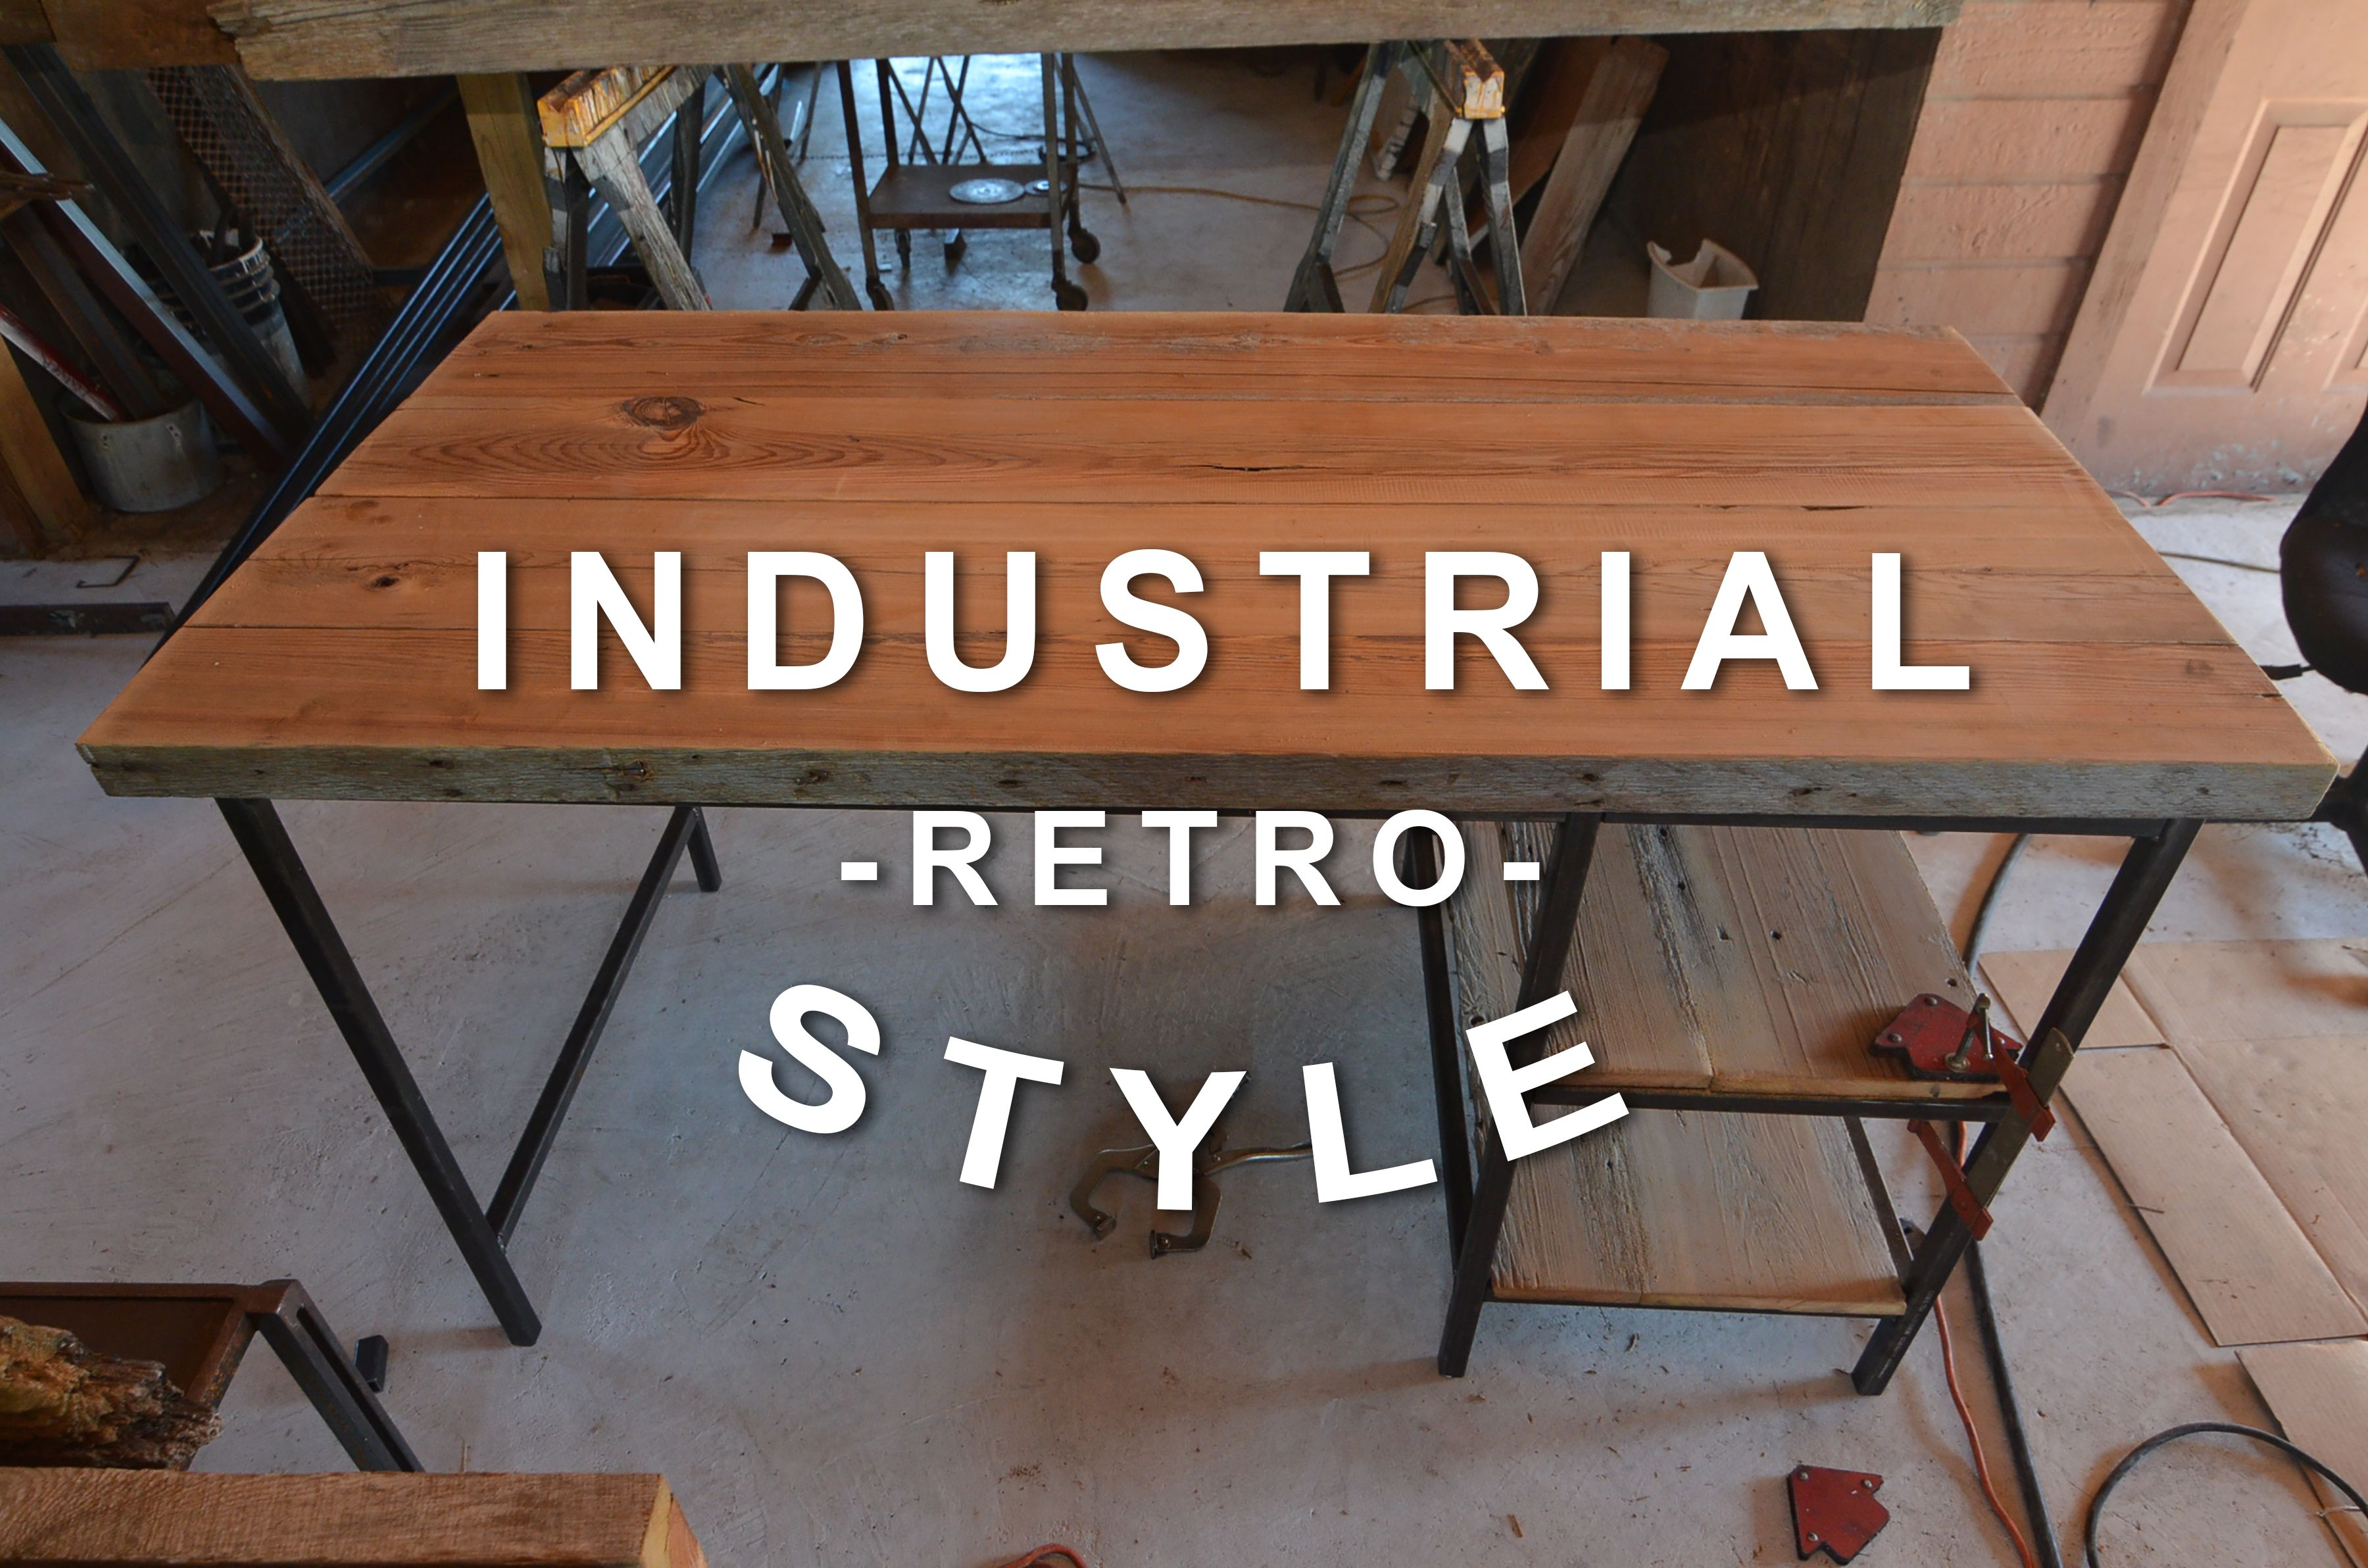 Buy a Hand Made Industrial Desk, made to order from AUSTIN RETRO